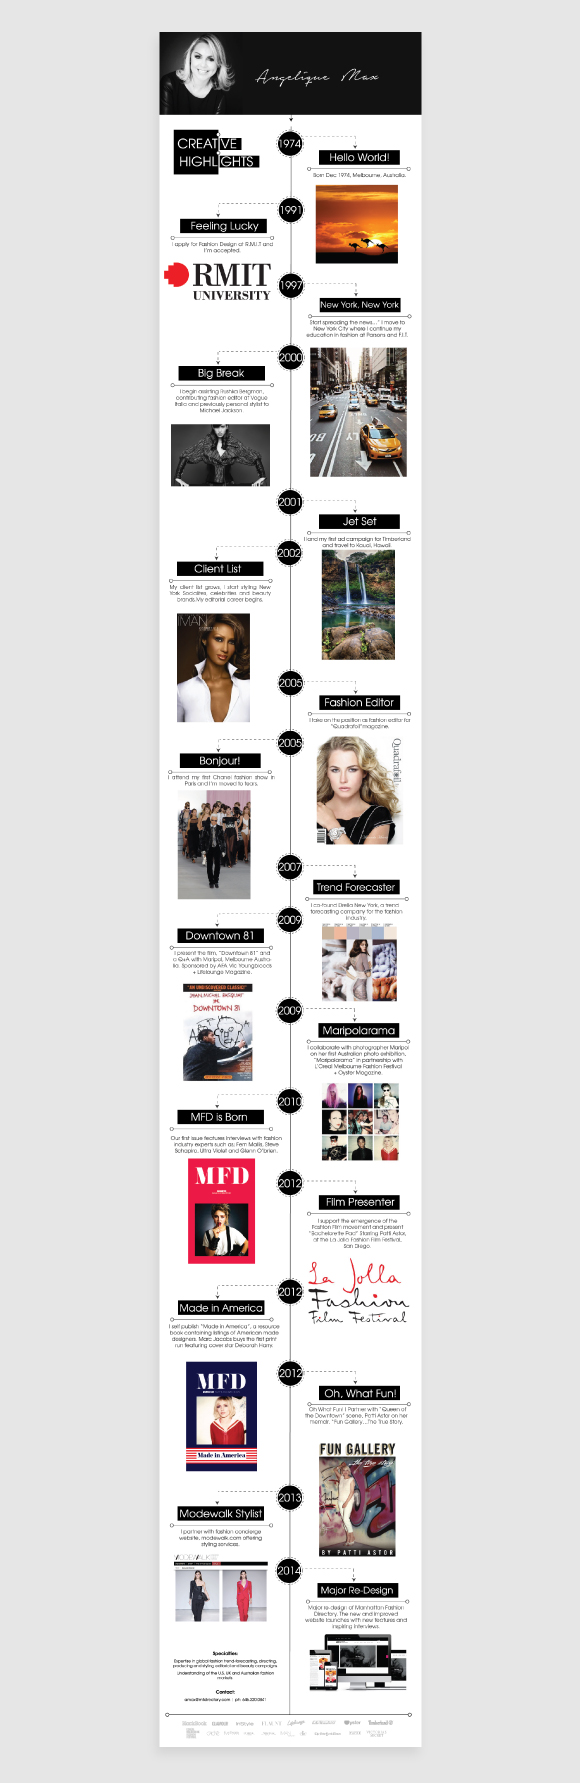 Personal history timeline